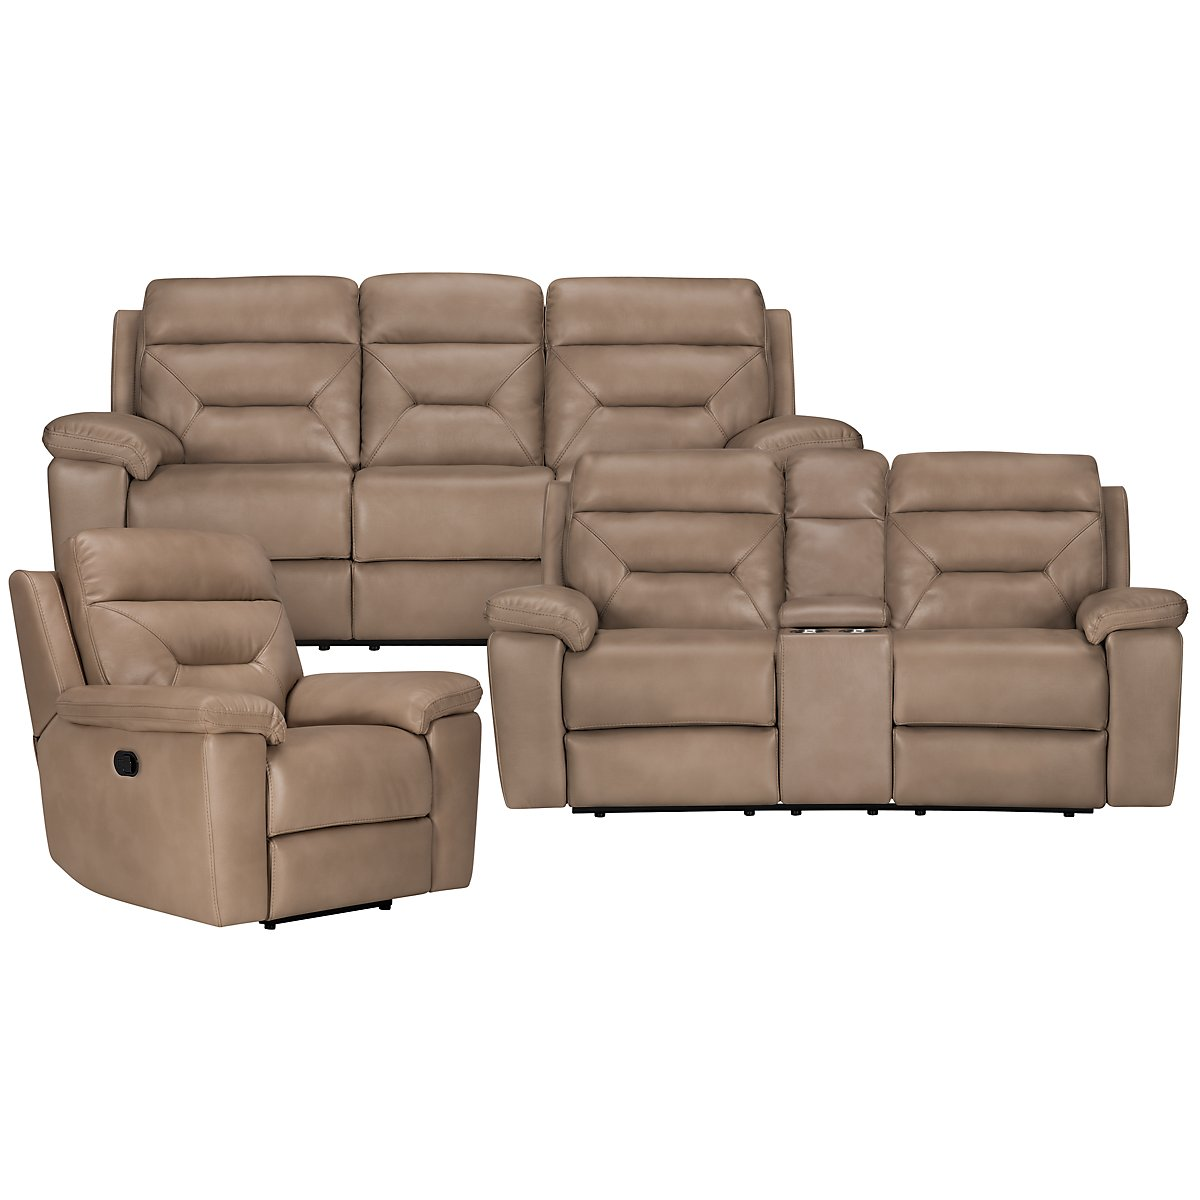 Phoenix Dark Beige Microfiber Manually Reclining Living Room